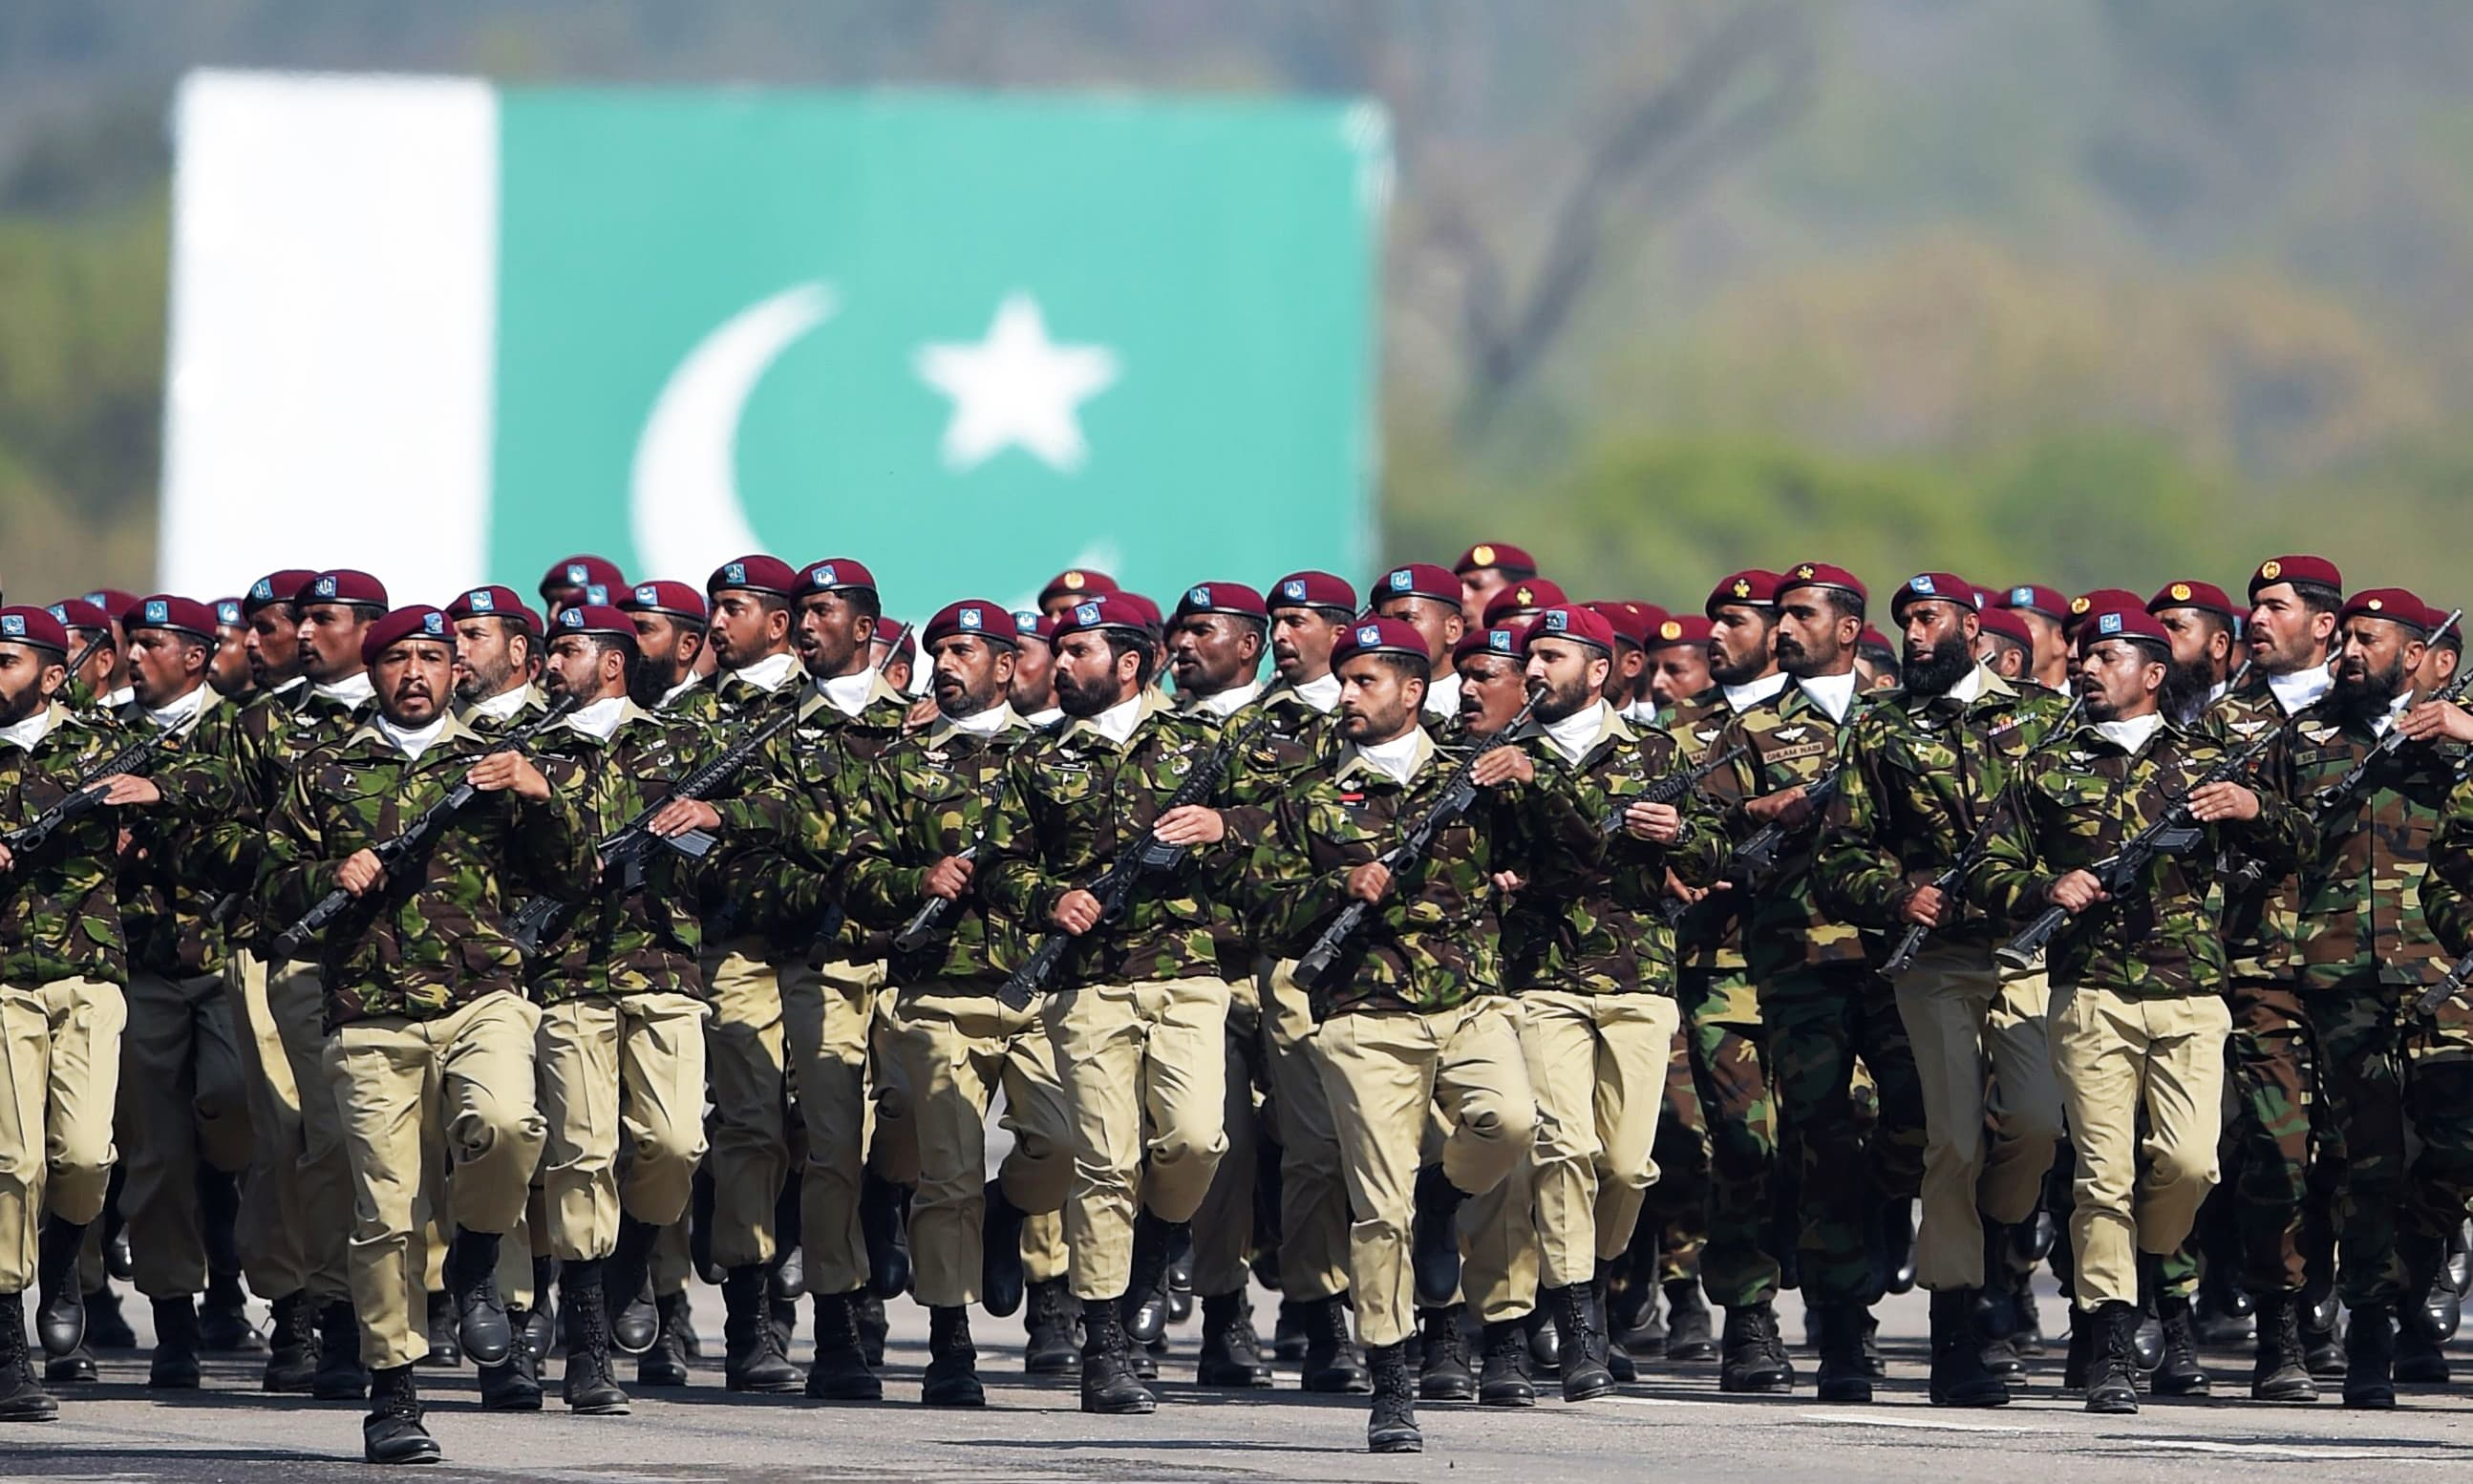 SSG personnel march during the Pakistan Day parade in Islamabad. —AFP